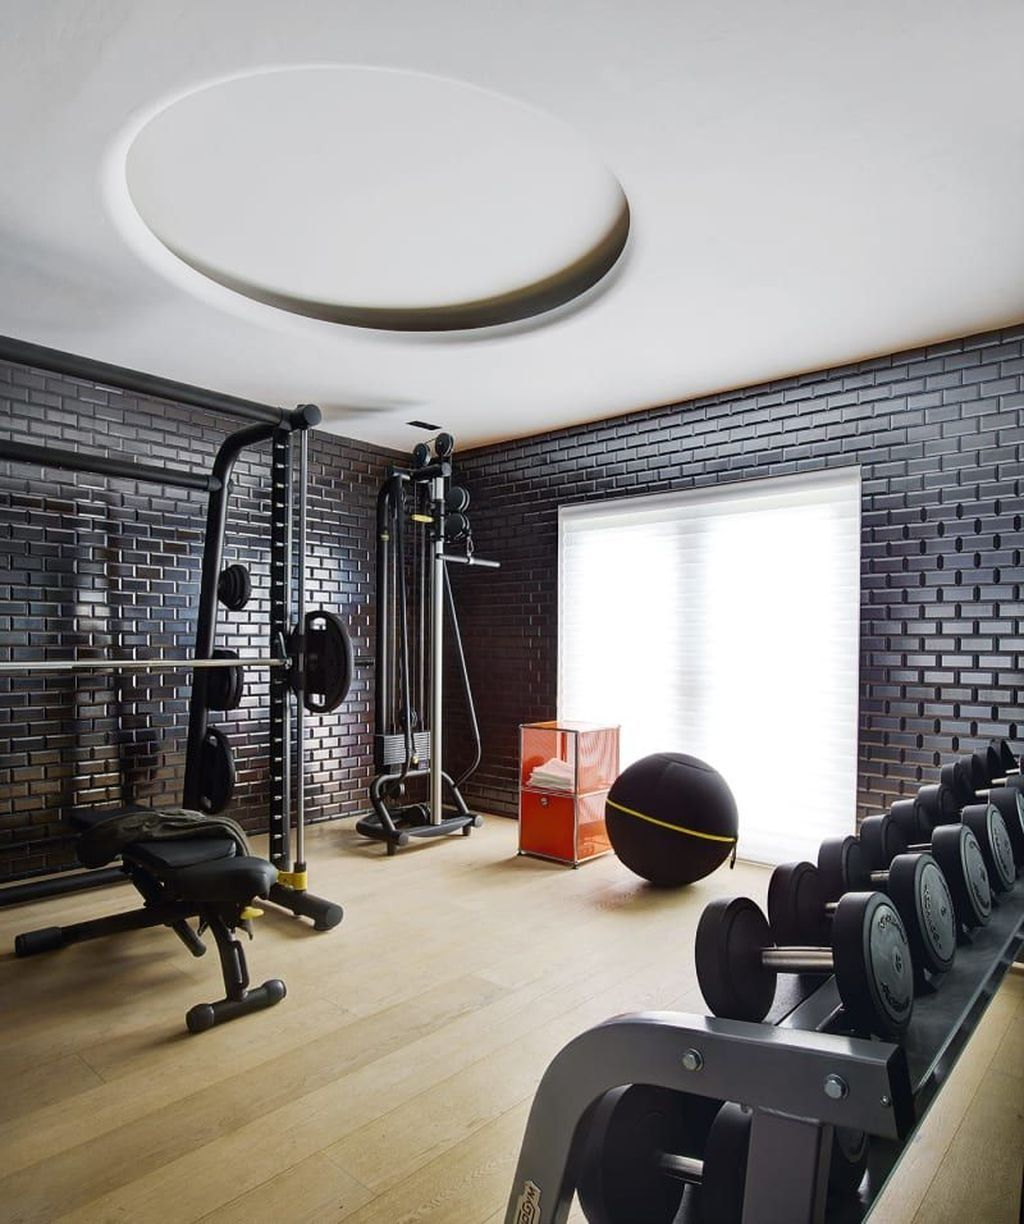 Awesome 20+ Outstanding Home Gym Room Design Ideas For